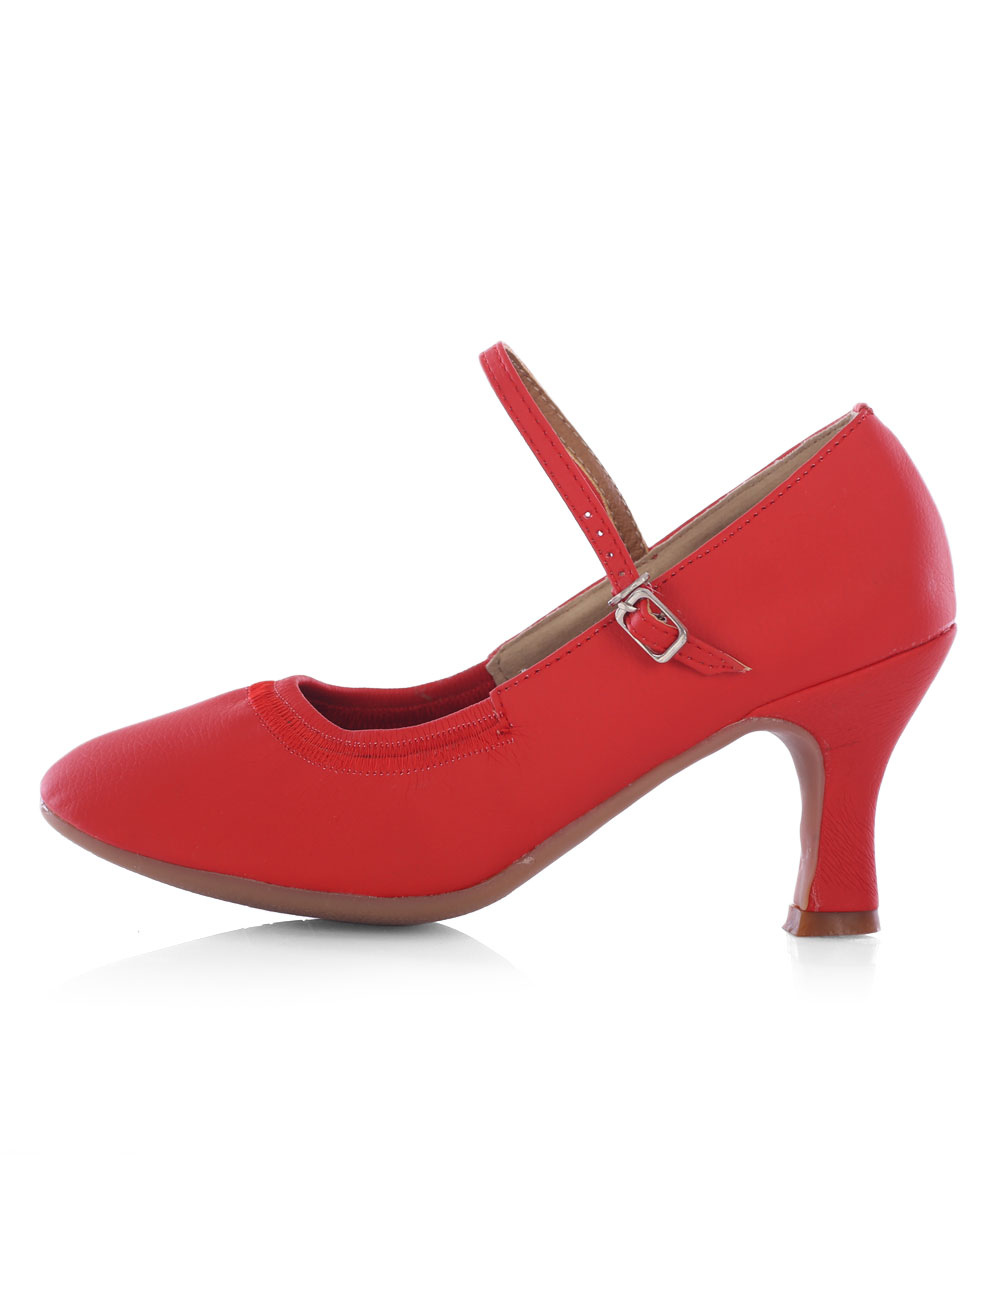 Buy Women's Ballroom Shoes Red Round Toe Mary Jane Strap Chunky Heel Latin Dance Shoes for $20.99 in Milanoo store